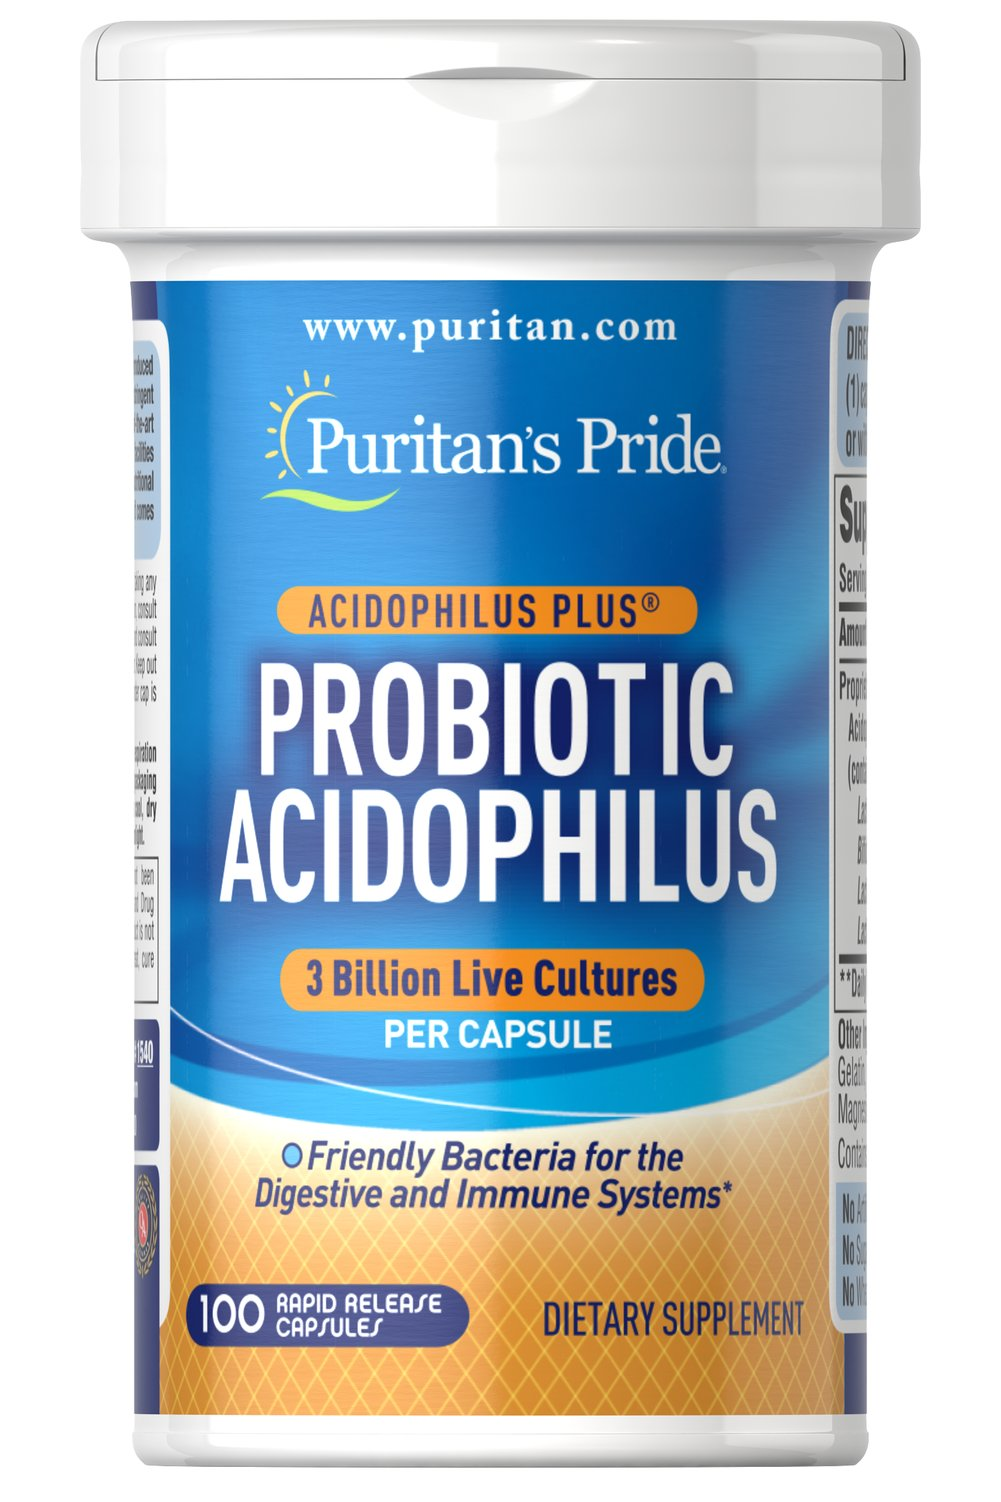 Probiotic Acidophilus with Pectin <p><strong>Supports intestinal health for the optimal absorption of nutrients**</strong></p><p>Guaranteed to provide three billion live cells per capsule at the time of manufacture.</p><p>Includes Acidophilus to support favorable environment for nutrients.</p><p>Encourages intestinal microflora balance**</p><p>Promotes healthy functioning of intestinal system.**</p> 100 Capsules 3 billion $1